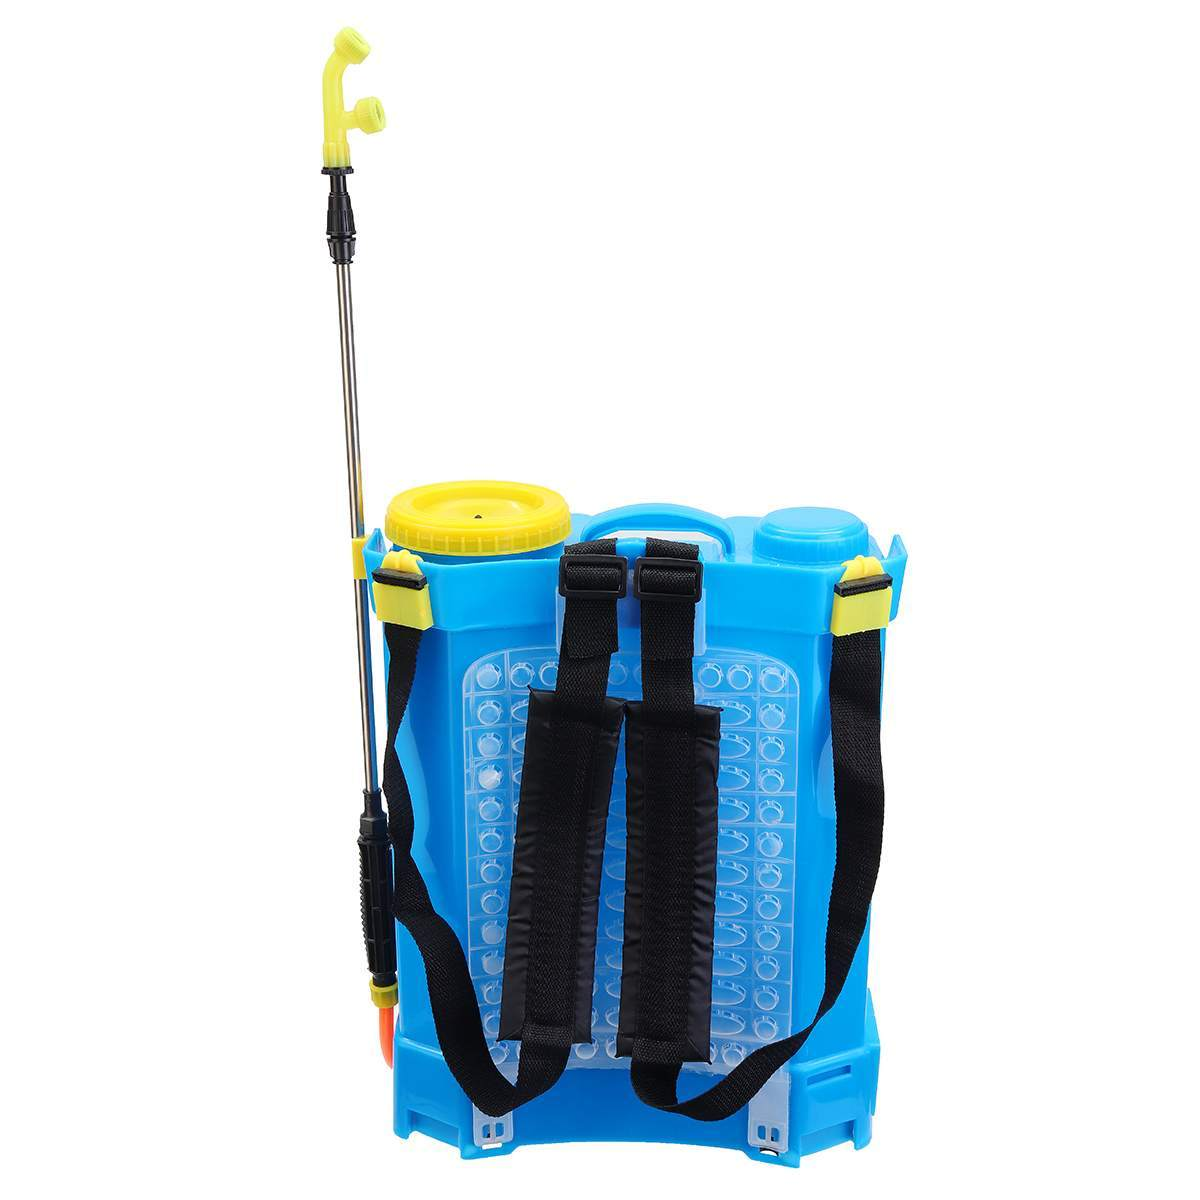 Premium Battery Powered Garden Backpack Sprayer - Daniels Store